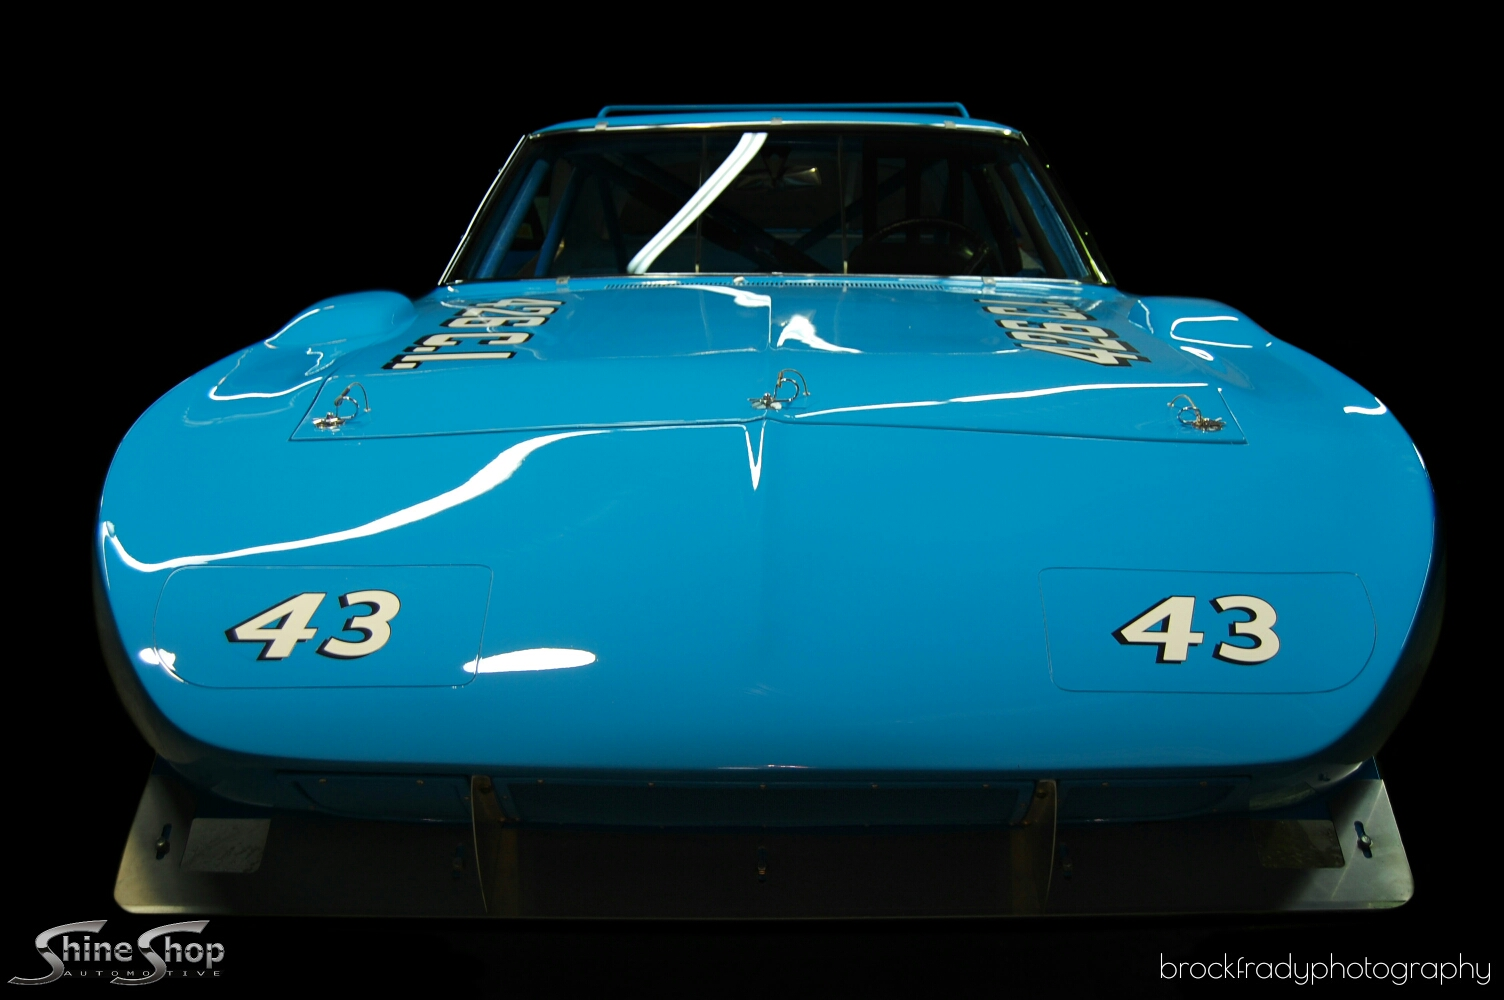 The Petty Superbird